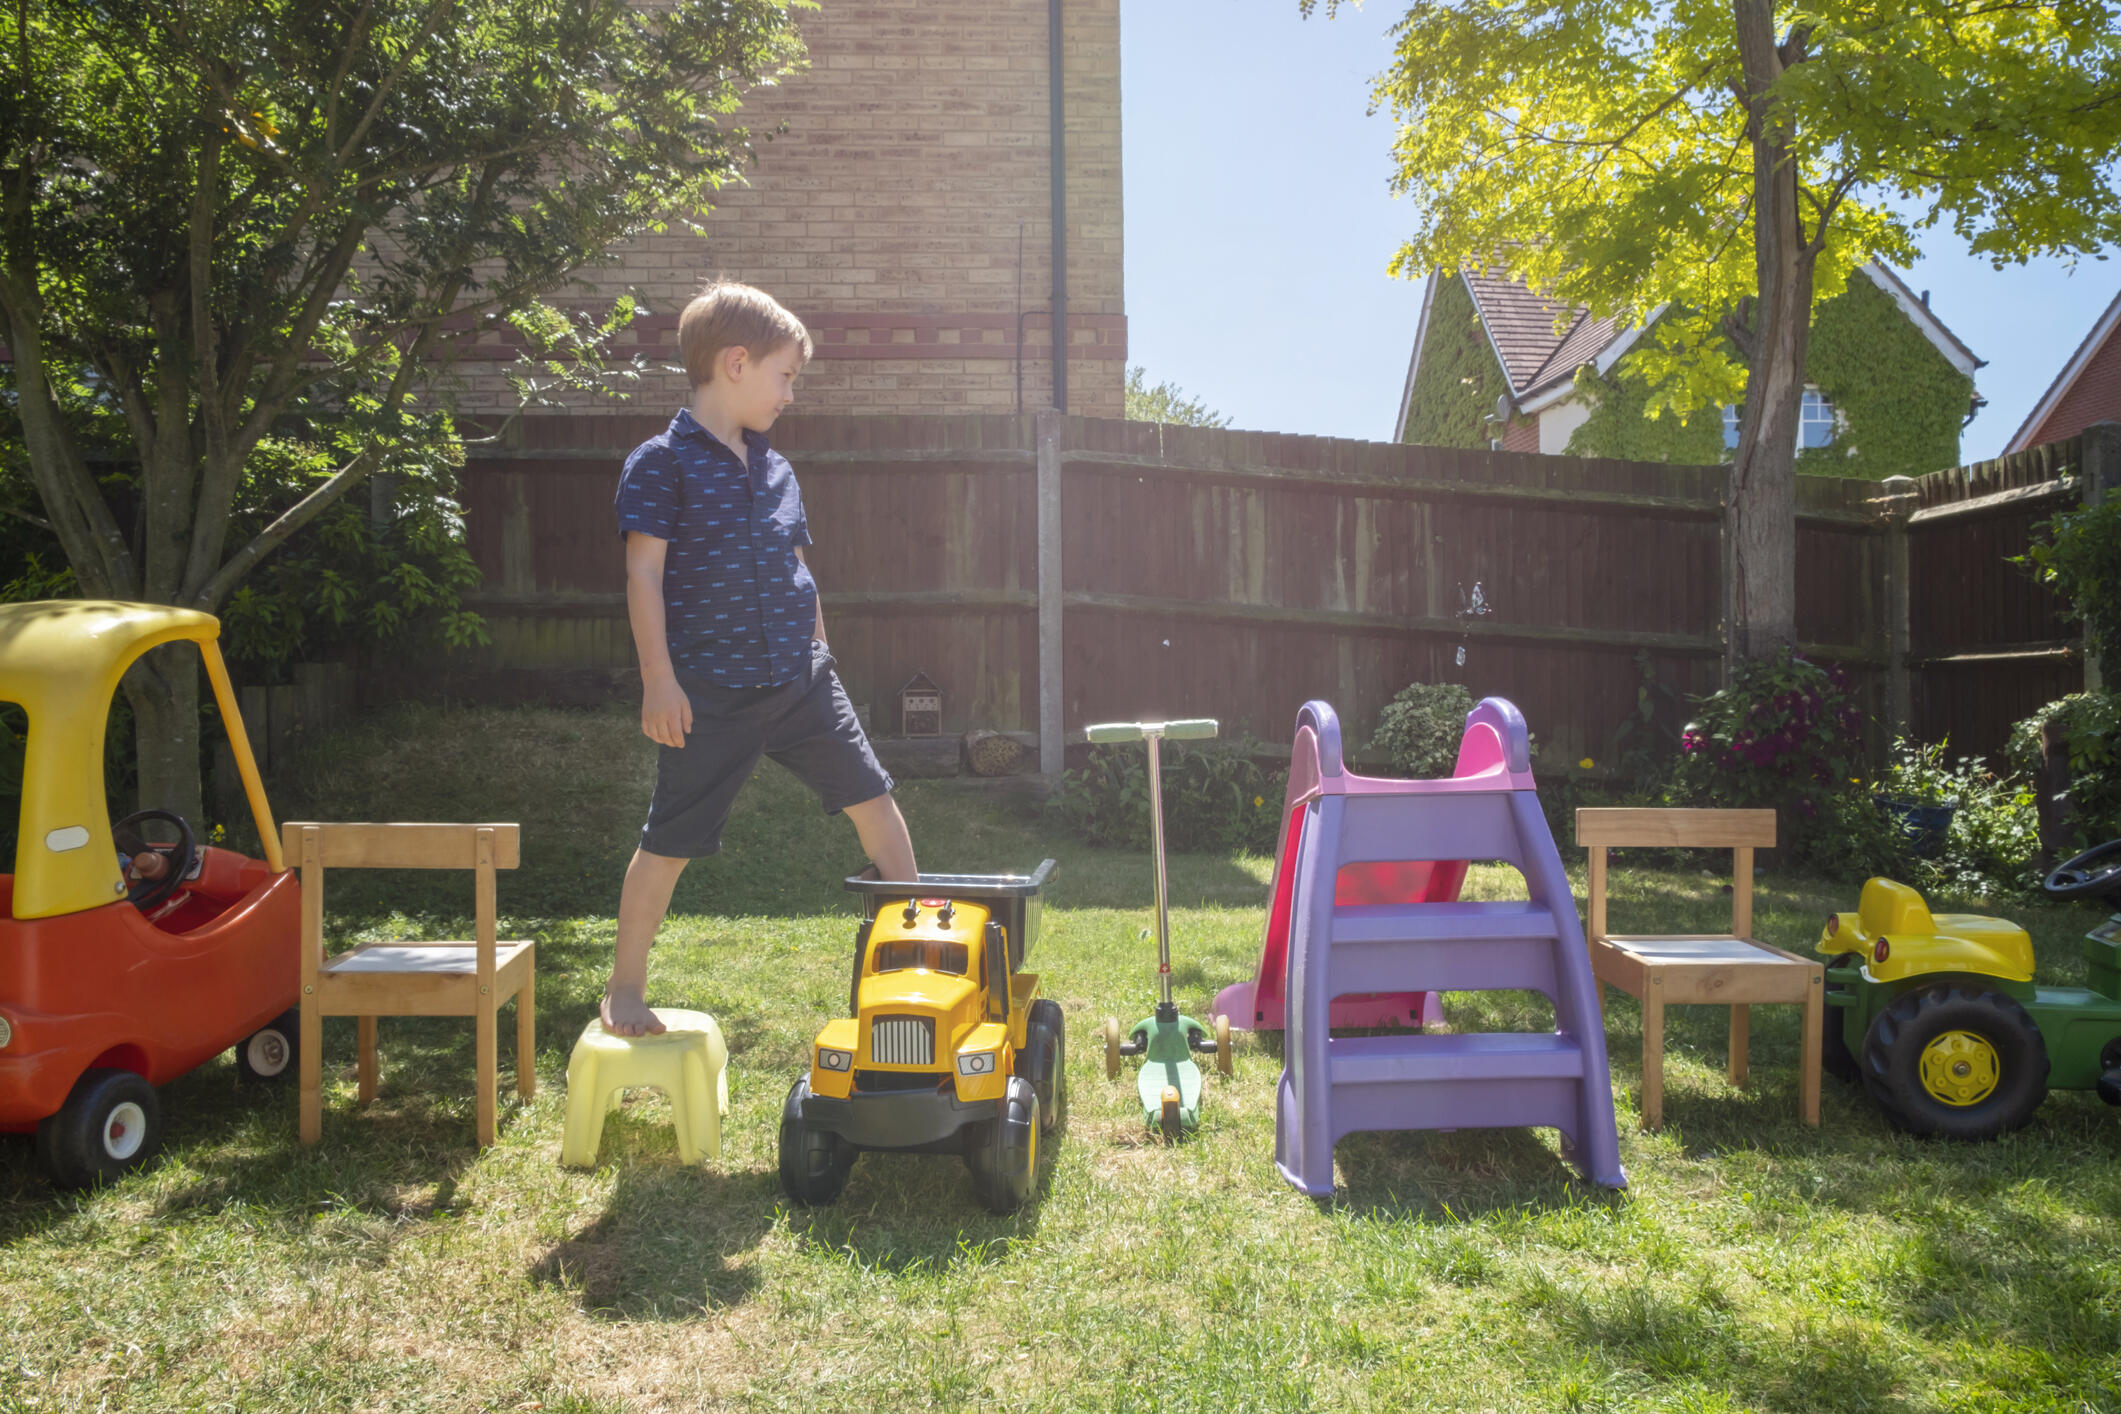 a young boy playing on an obstacle course made of toys in a yard